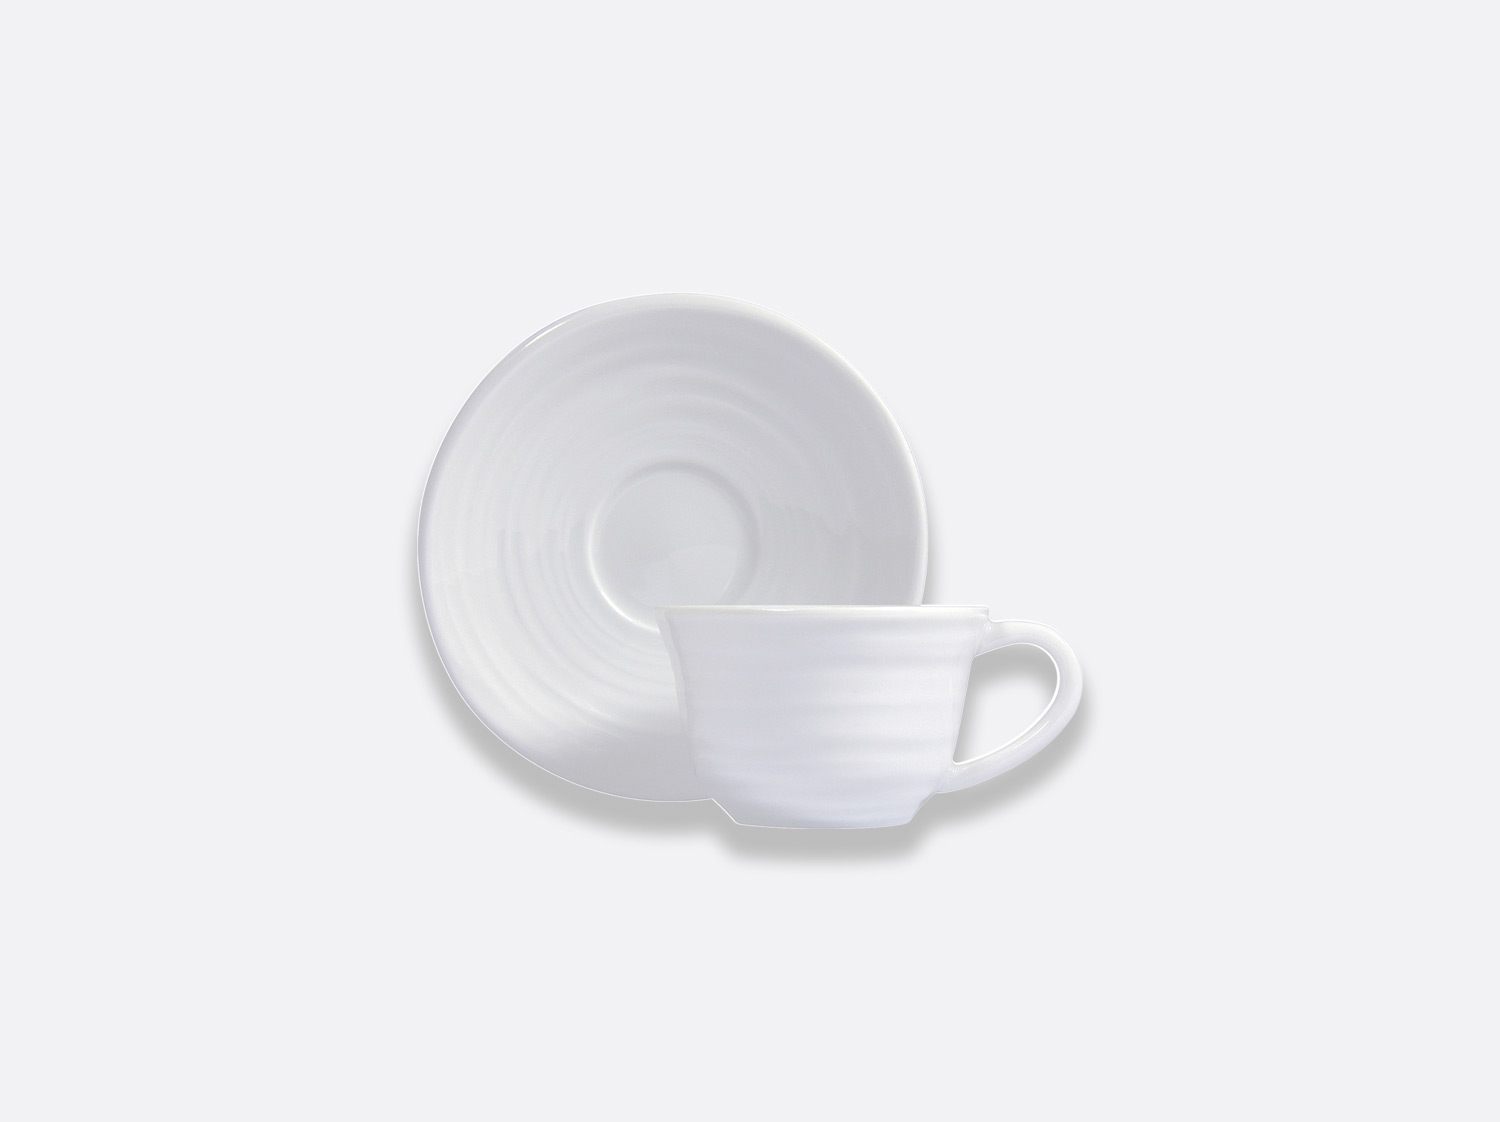 Tasse et soucoupe à café 8 cl en porcelaine de la collection Origine Bernardaud